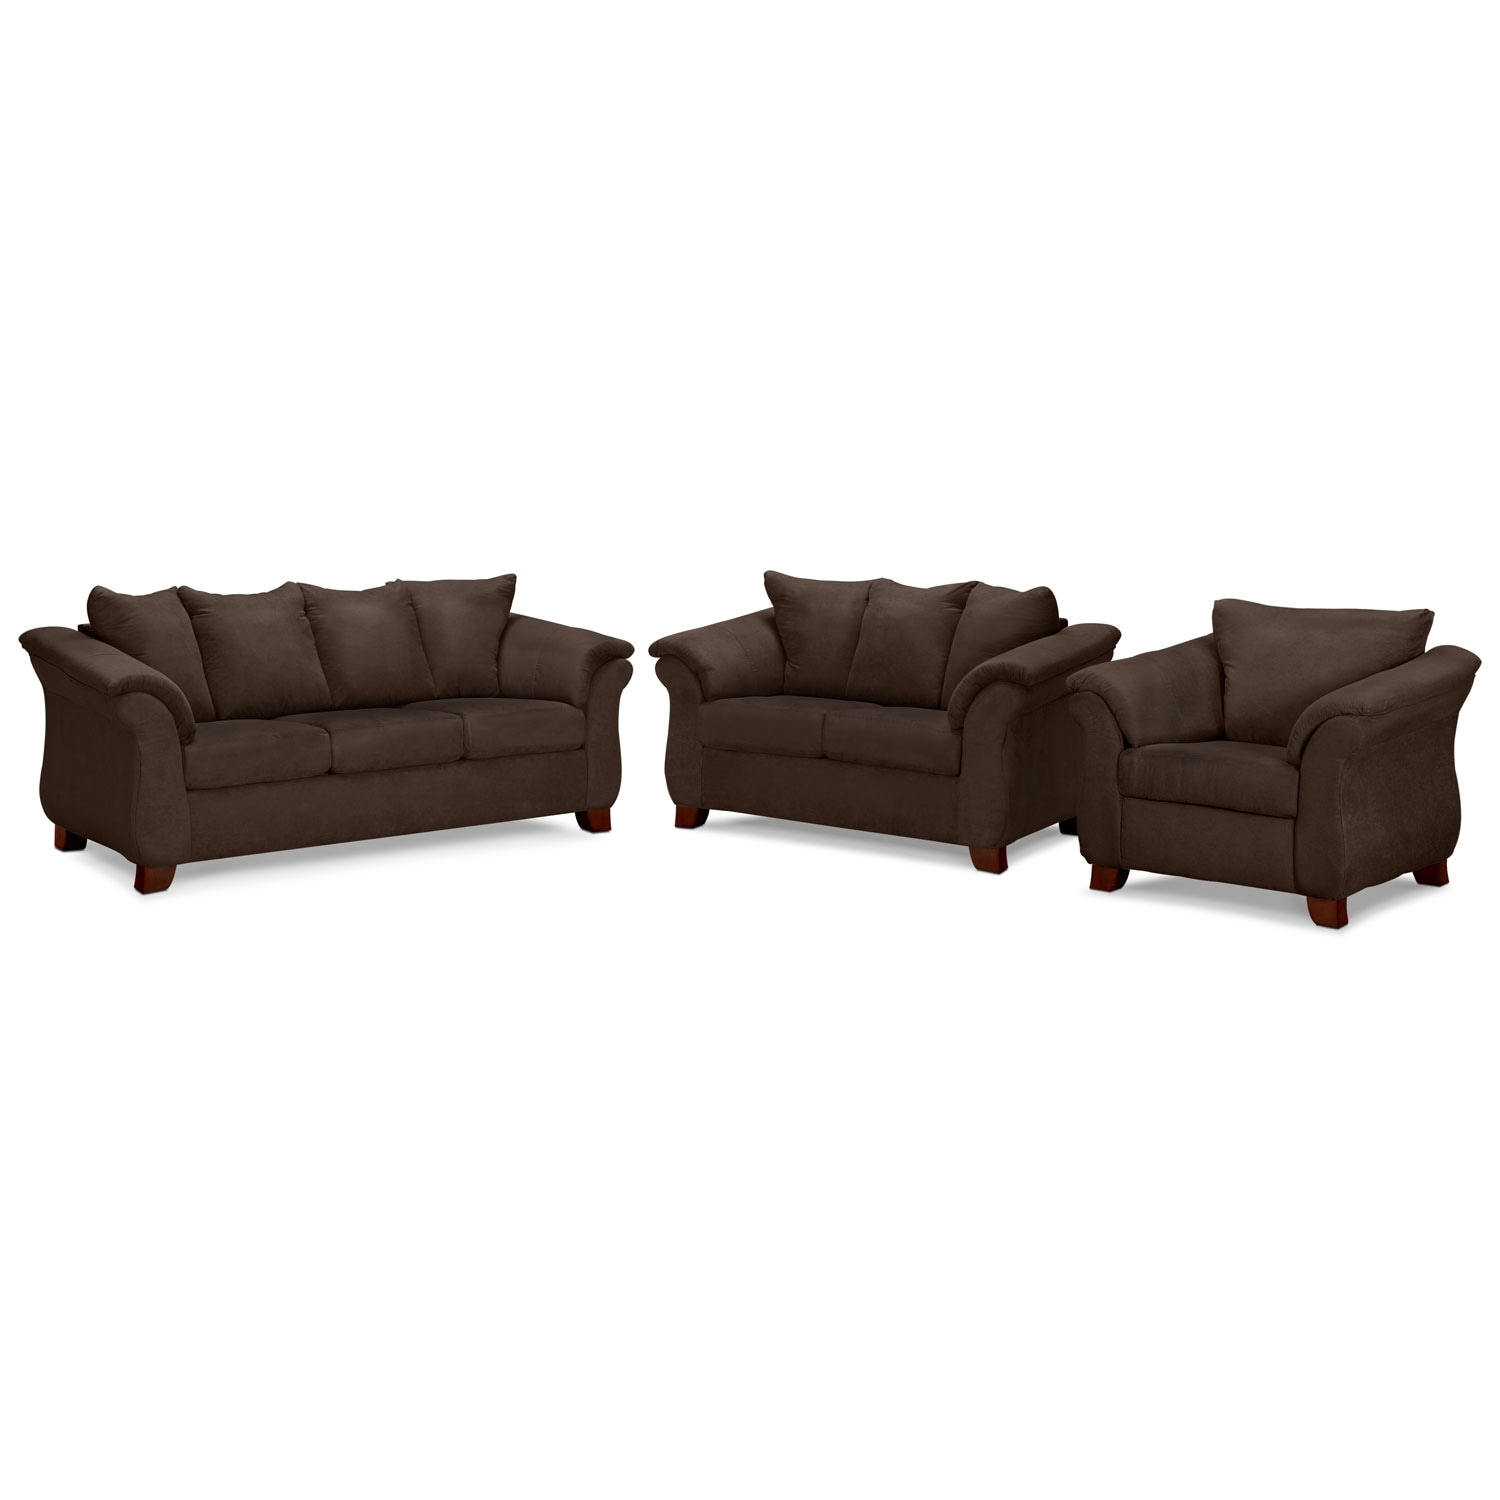 Living Room Furniture - Adrian Chocolate 3 Pc. Living Room